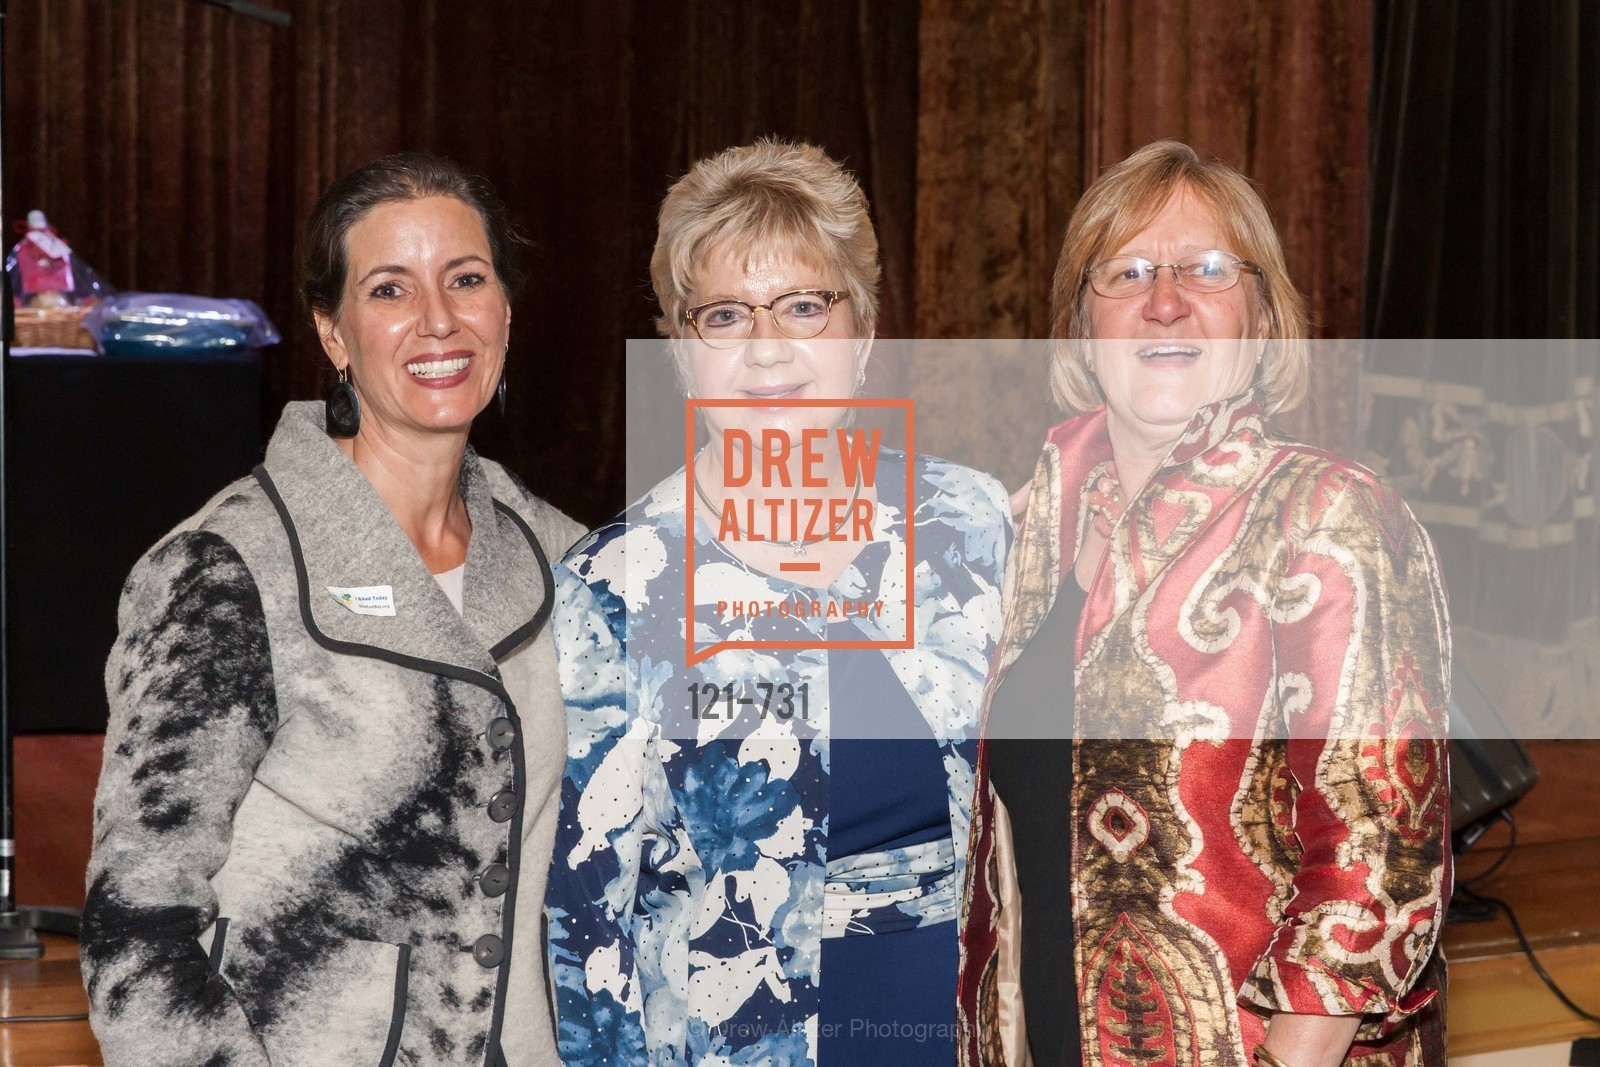 Libby Schaaf, Darlene Gee, Amy Worth, WOMEN'S TRANSPORTATION SEMINAR SF Bay Area Chapter Annual Scholarship Awards, US, May 15th, 2015,Drew Altizer, Drew Altizer Photography, full-service agency, private events, San Francisco photographer, photographer california